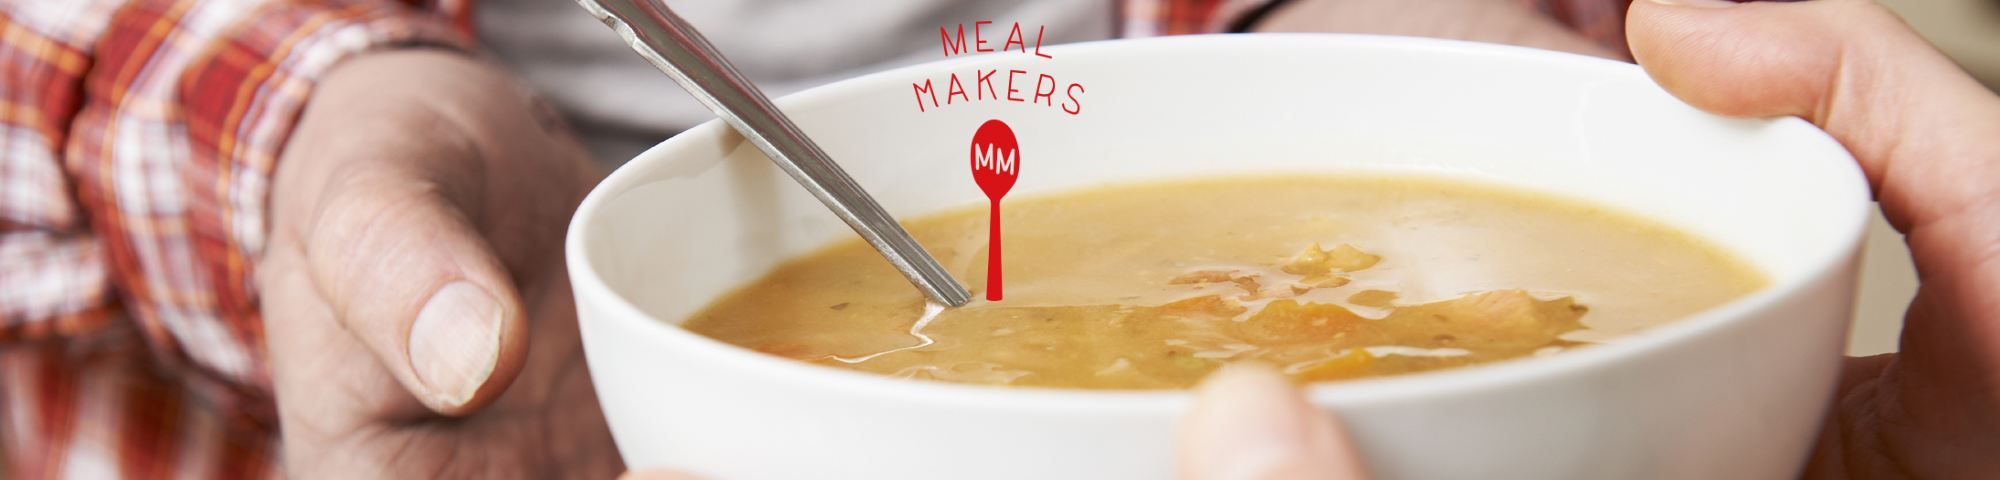 Meal Makers